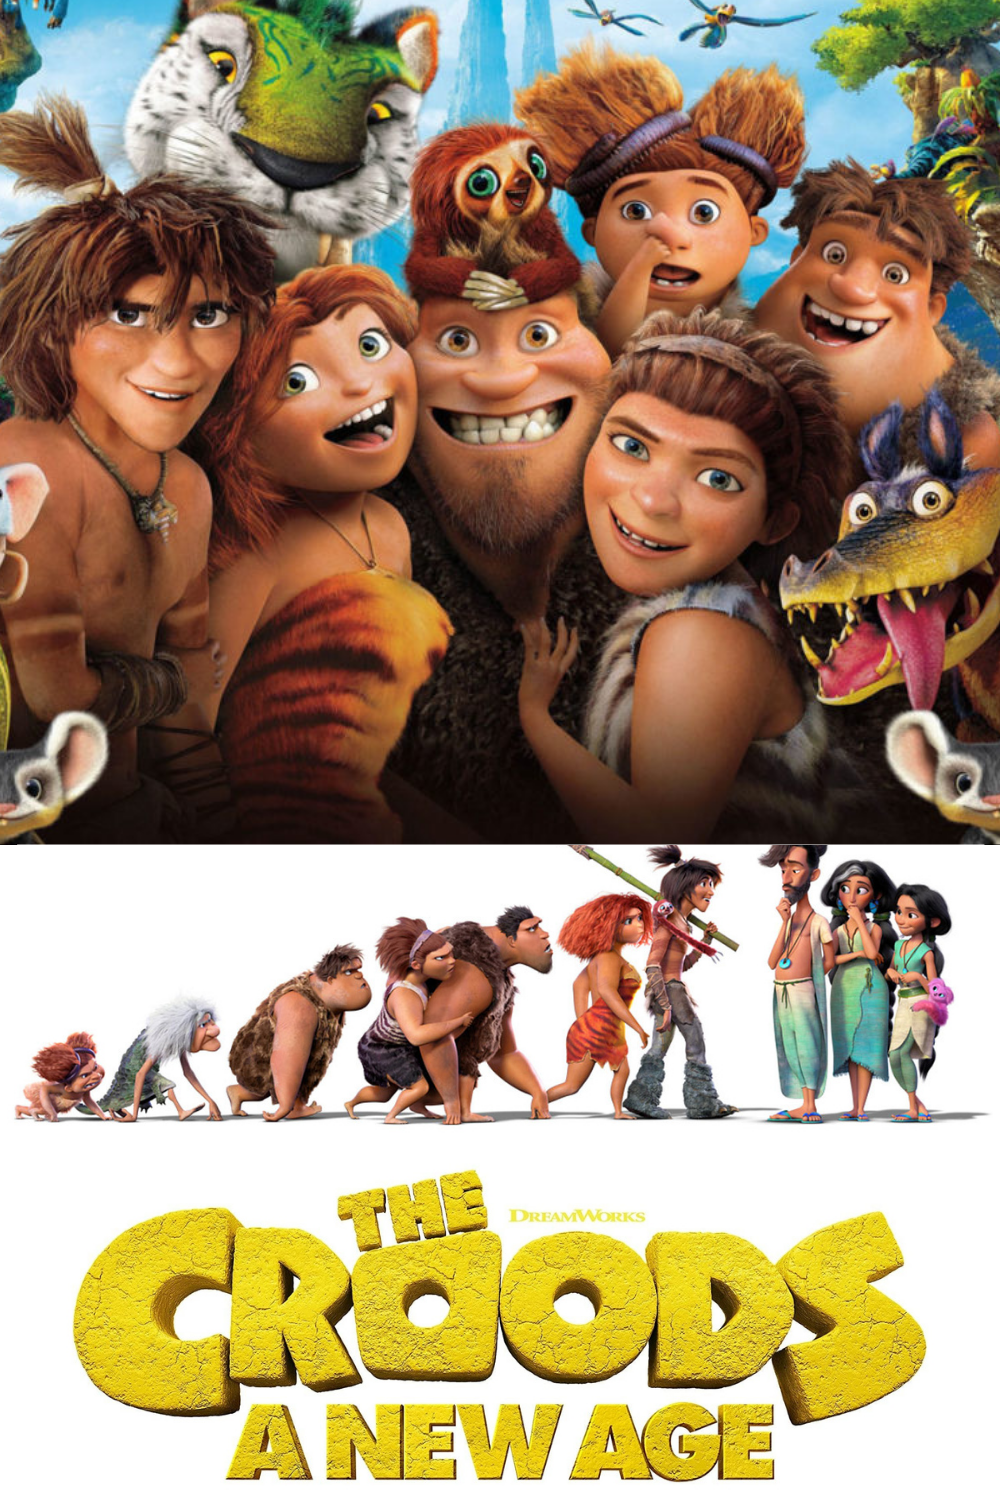 Les Croods 2 Film Complet En Francais Entier Gratuit Full Movies Online Free New Age Full Movies